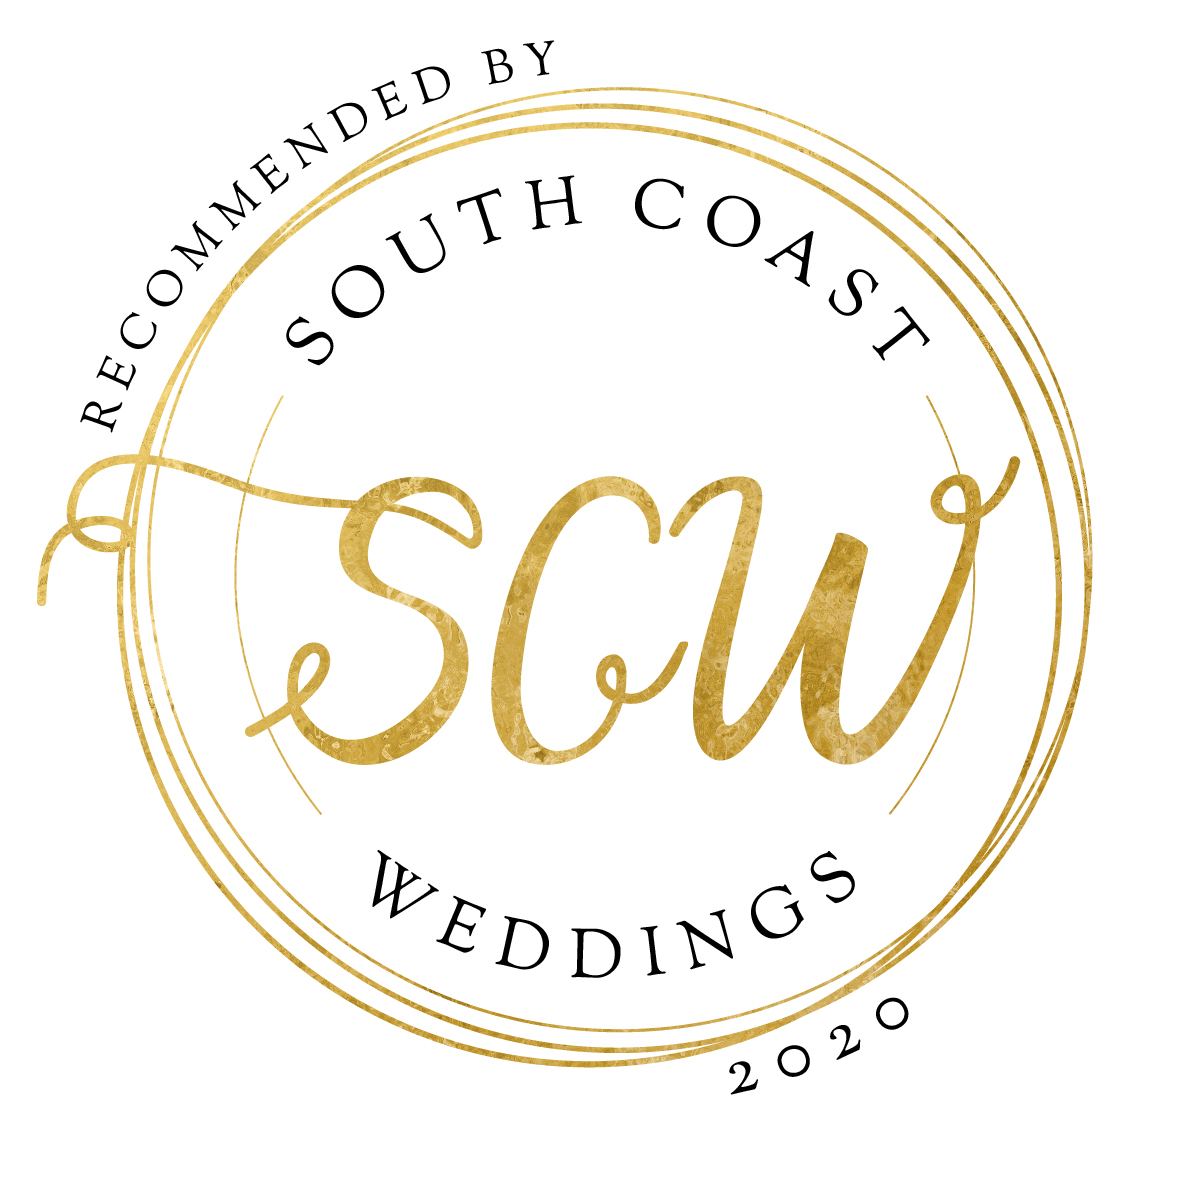 Recommended Supplier of South Coast Weddings Magazine 2020